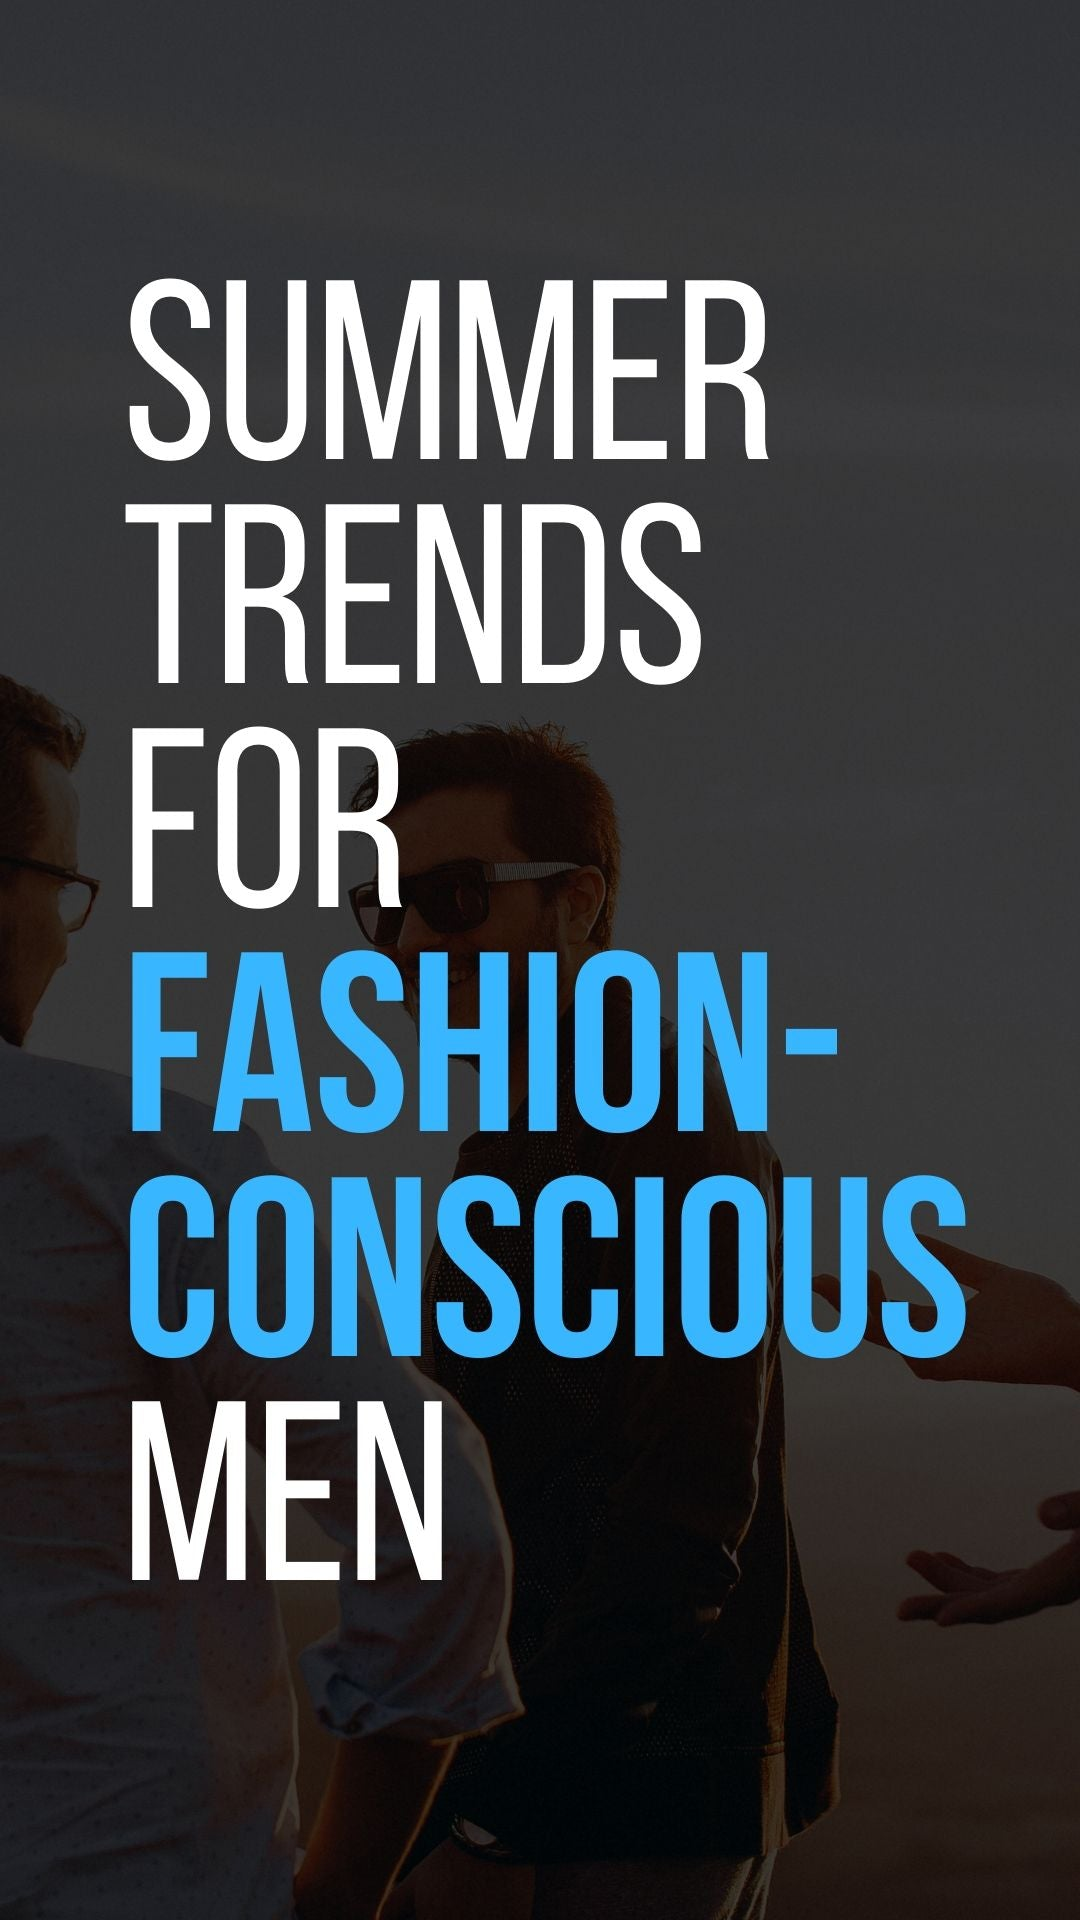 Summer Trends For Fashion-Conscious Men